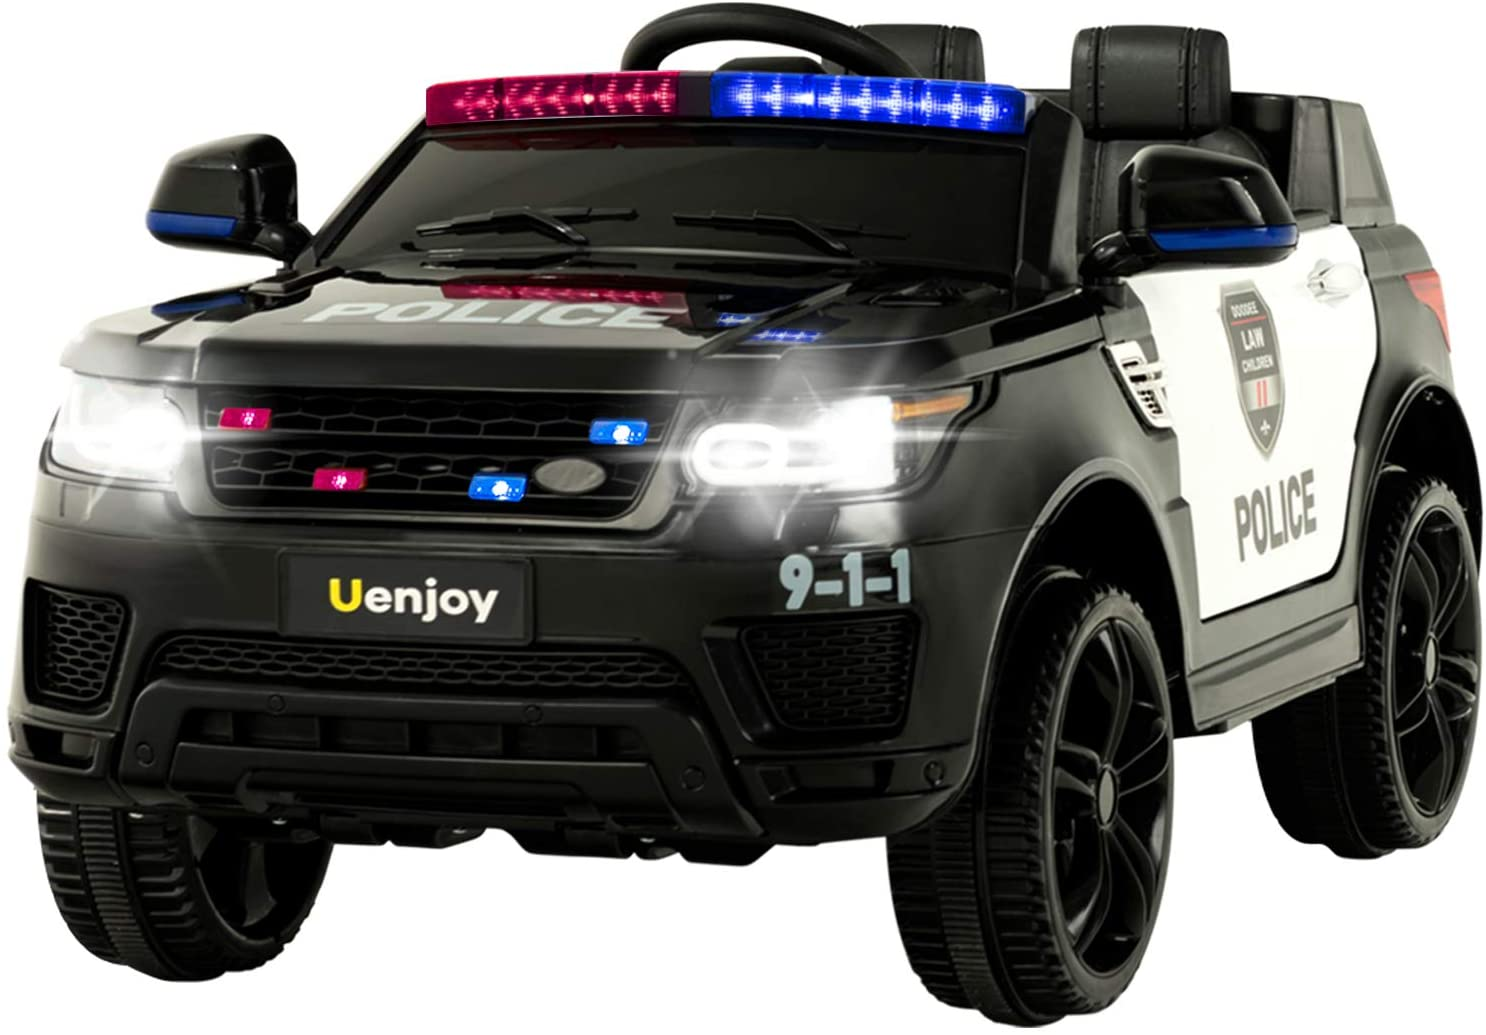 12 Volt Ride on Toy Police Car